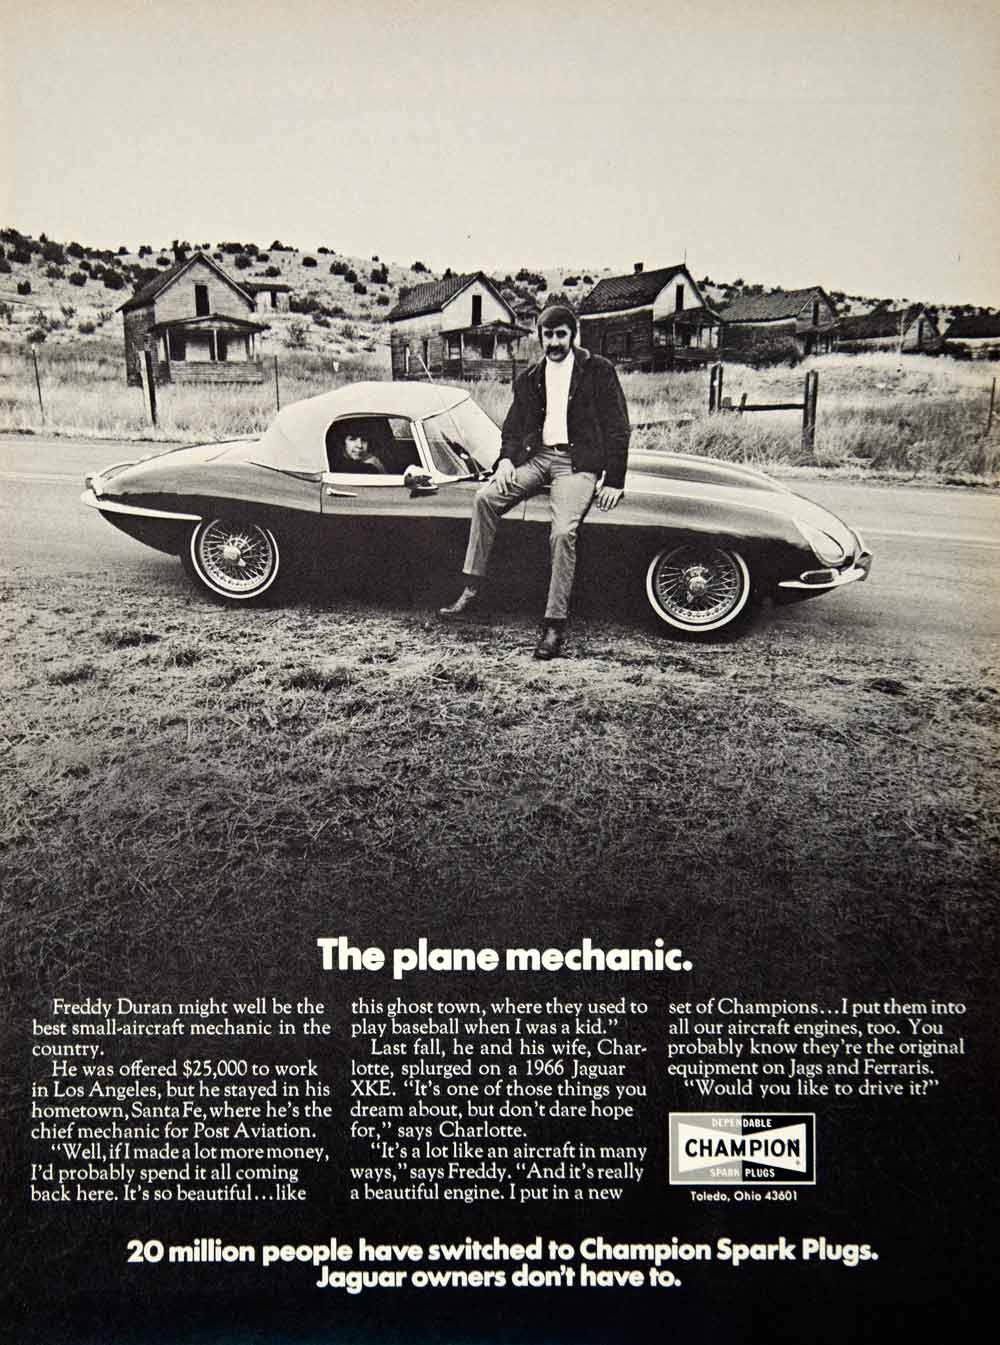 1971 Ad Champion Spark Plugs Auto Parts Freddy Duran 1966 Jaguar XKE Sports YCD8